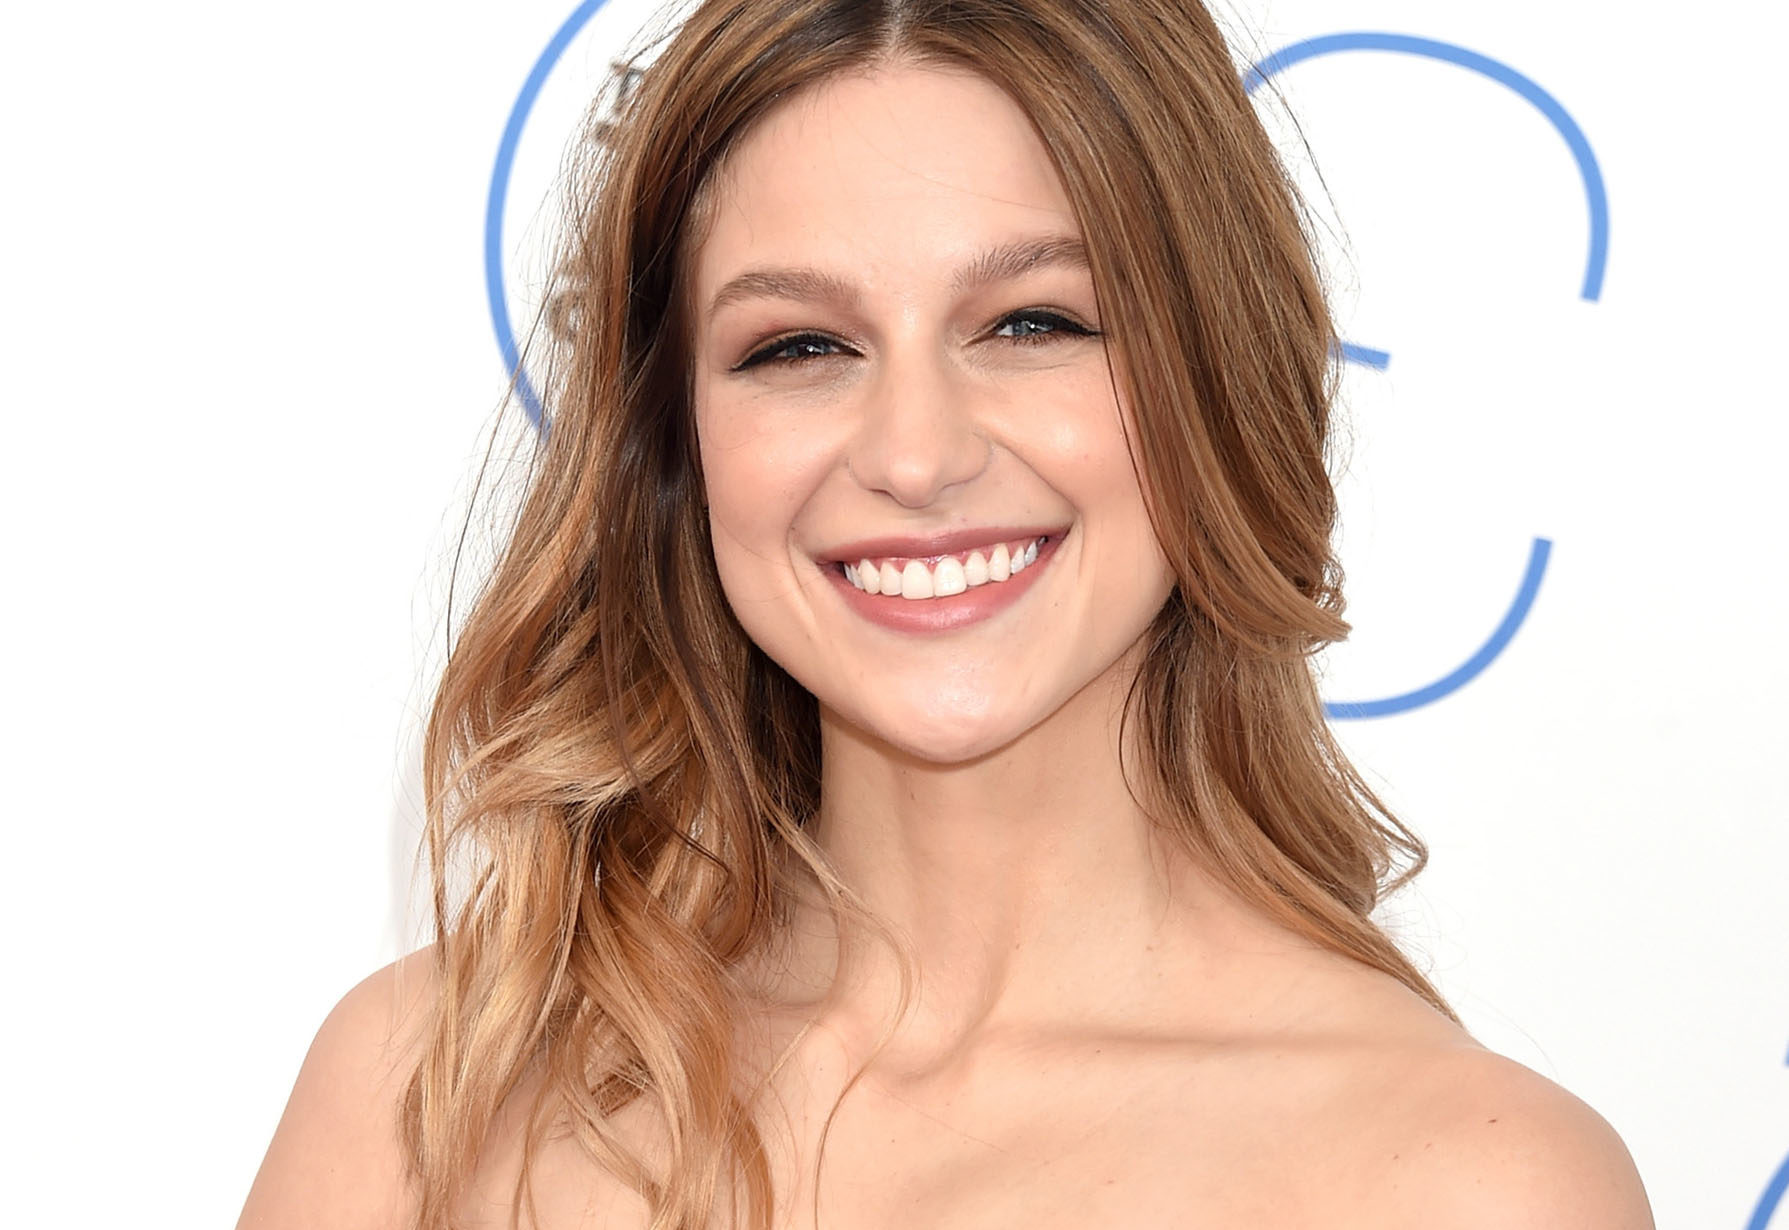 Melissa Benoist smiling about her fappening leak